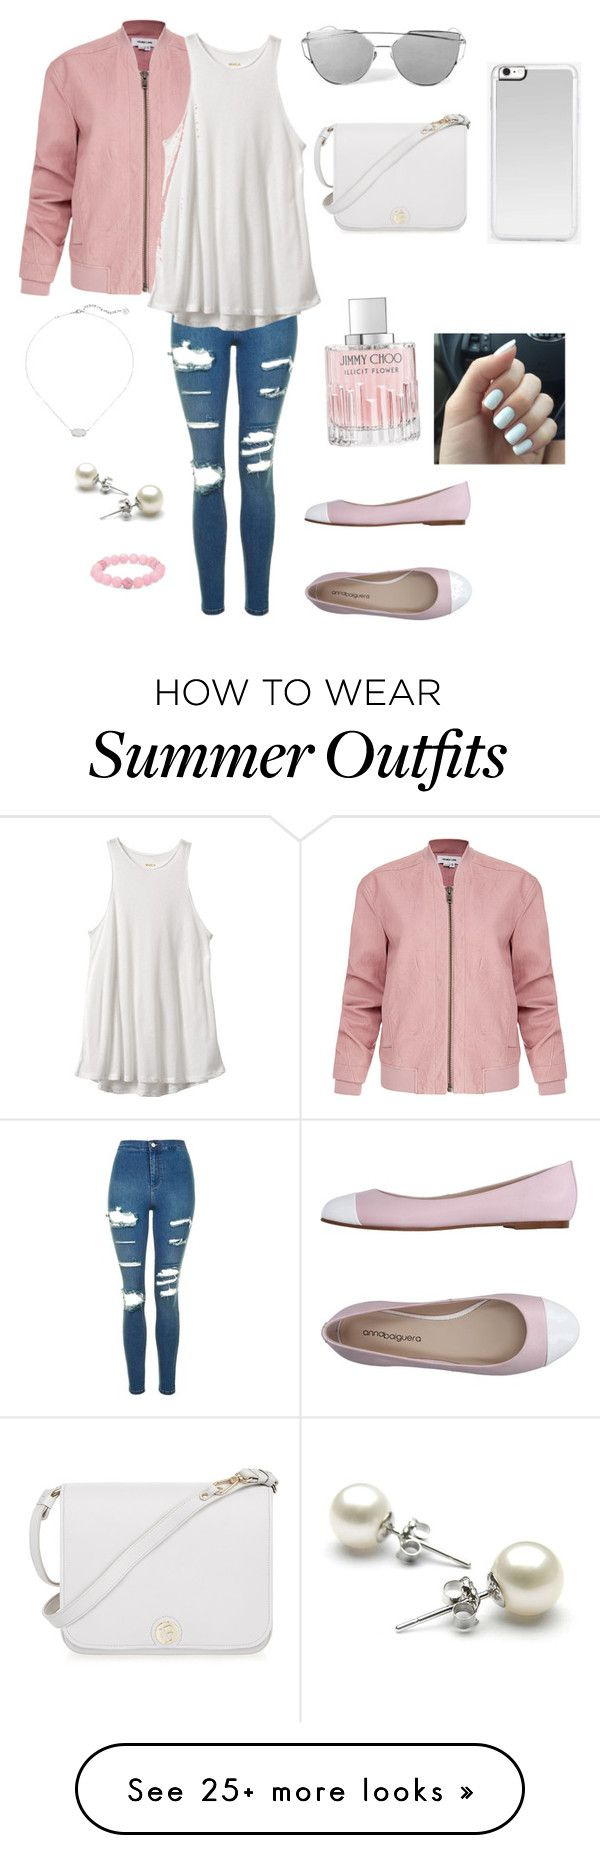 """""""Light pink cute outfit"""" by cheleniak on Polyvore featuring Helmut Lan..."""